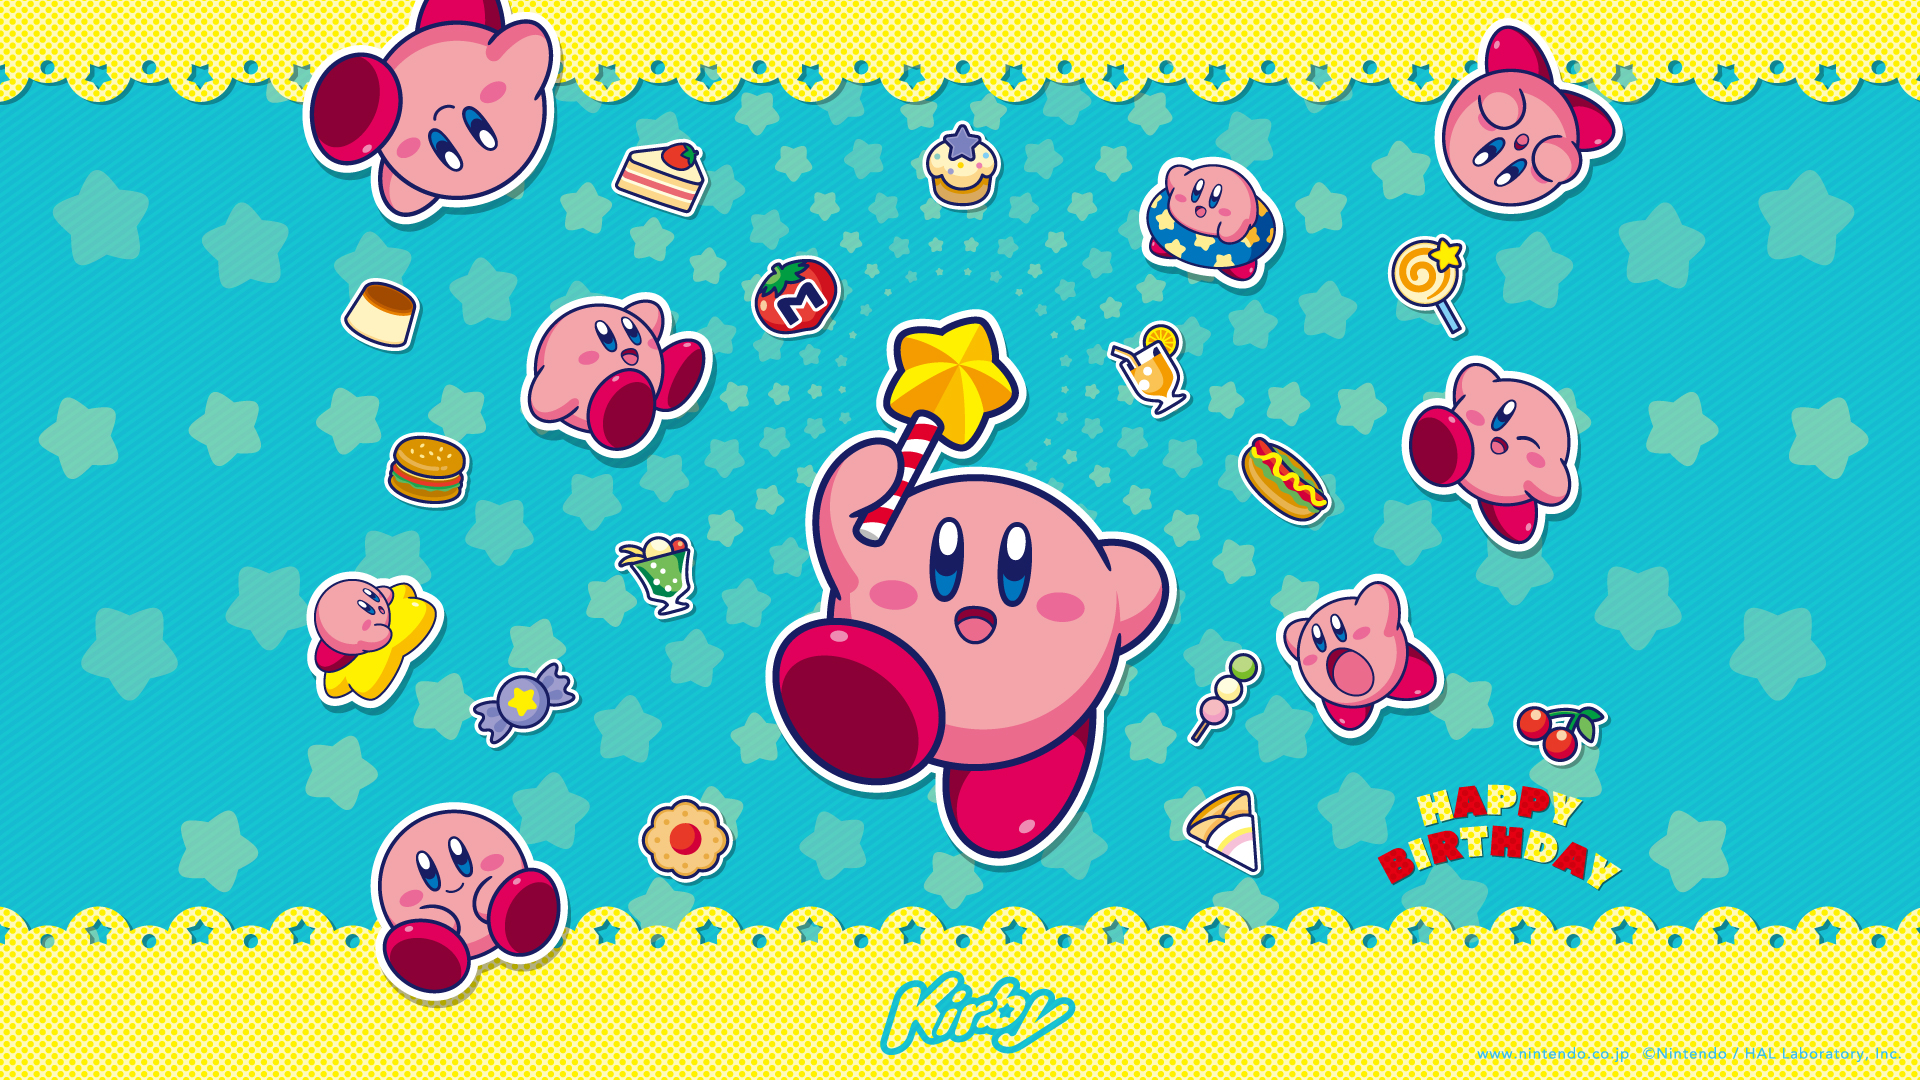 kirby happy birthday official wallpaper available gonintendo